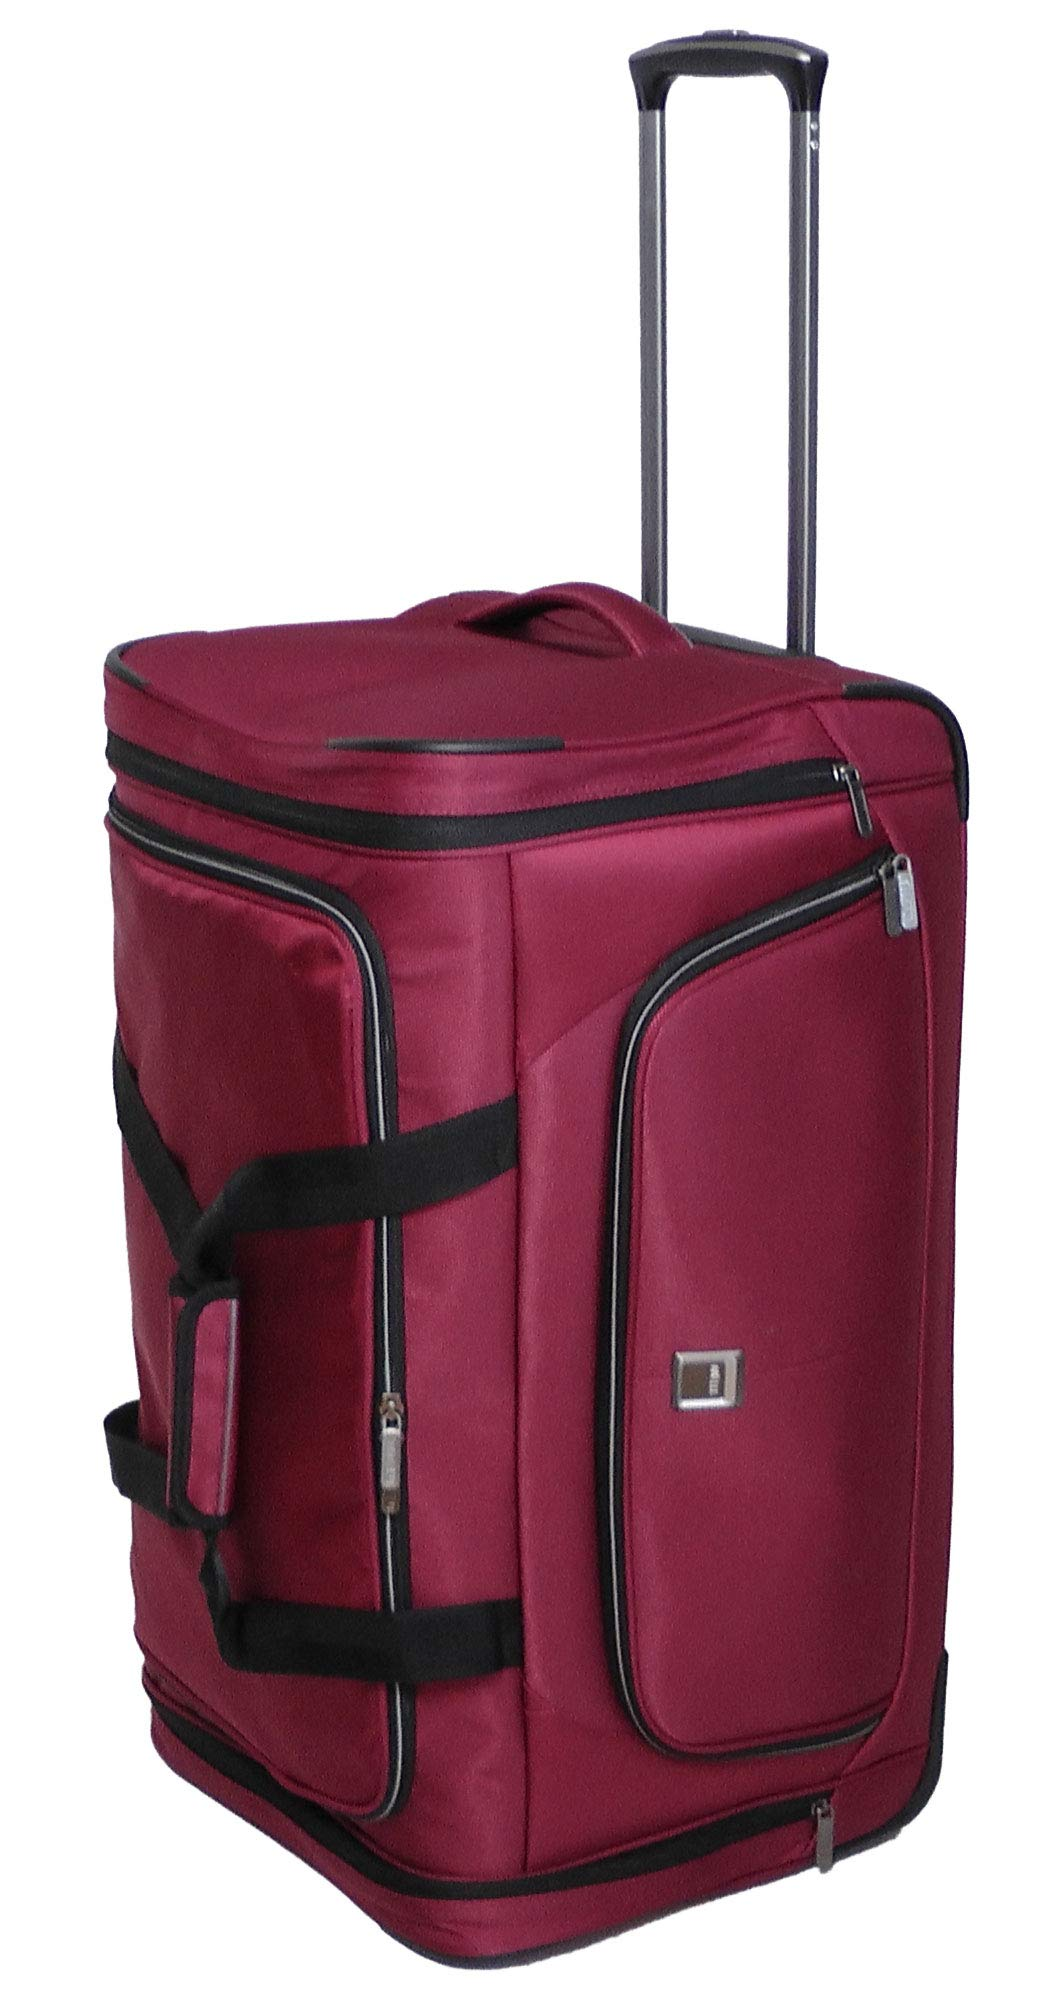 Titan Luggage and Travel Gear Nonstop 27 Wheels Duffel Bag, Red, One Size